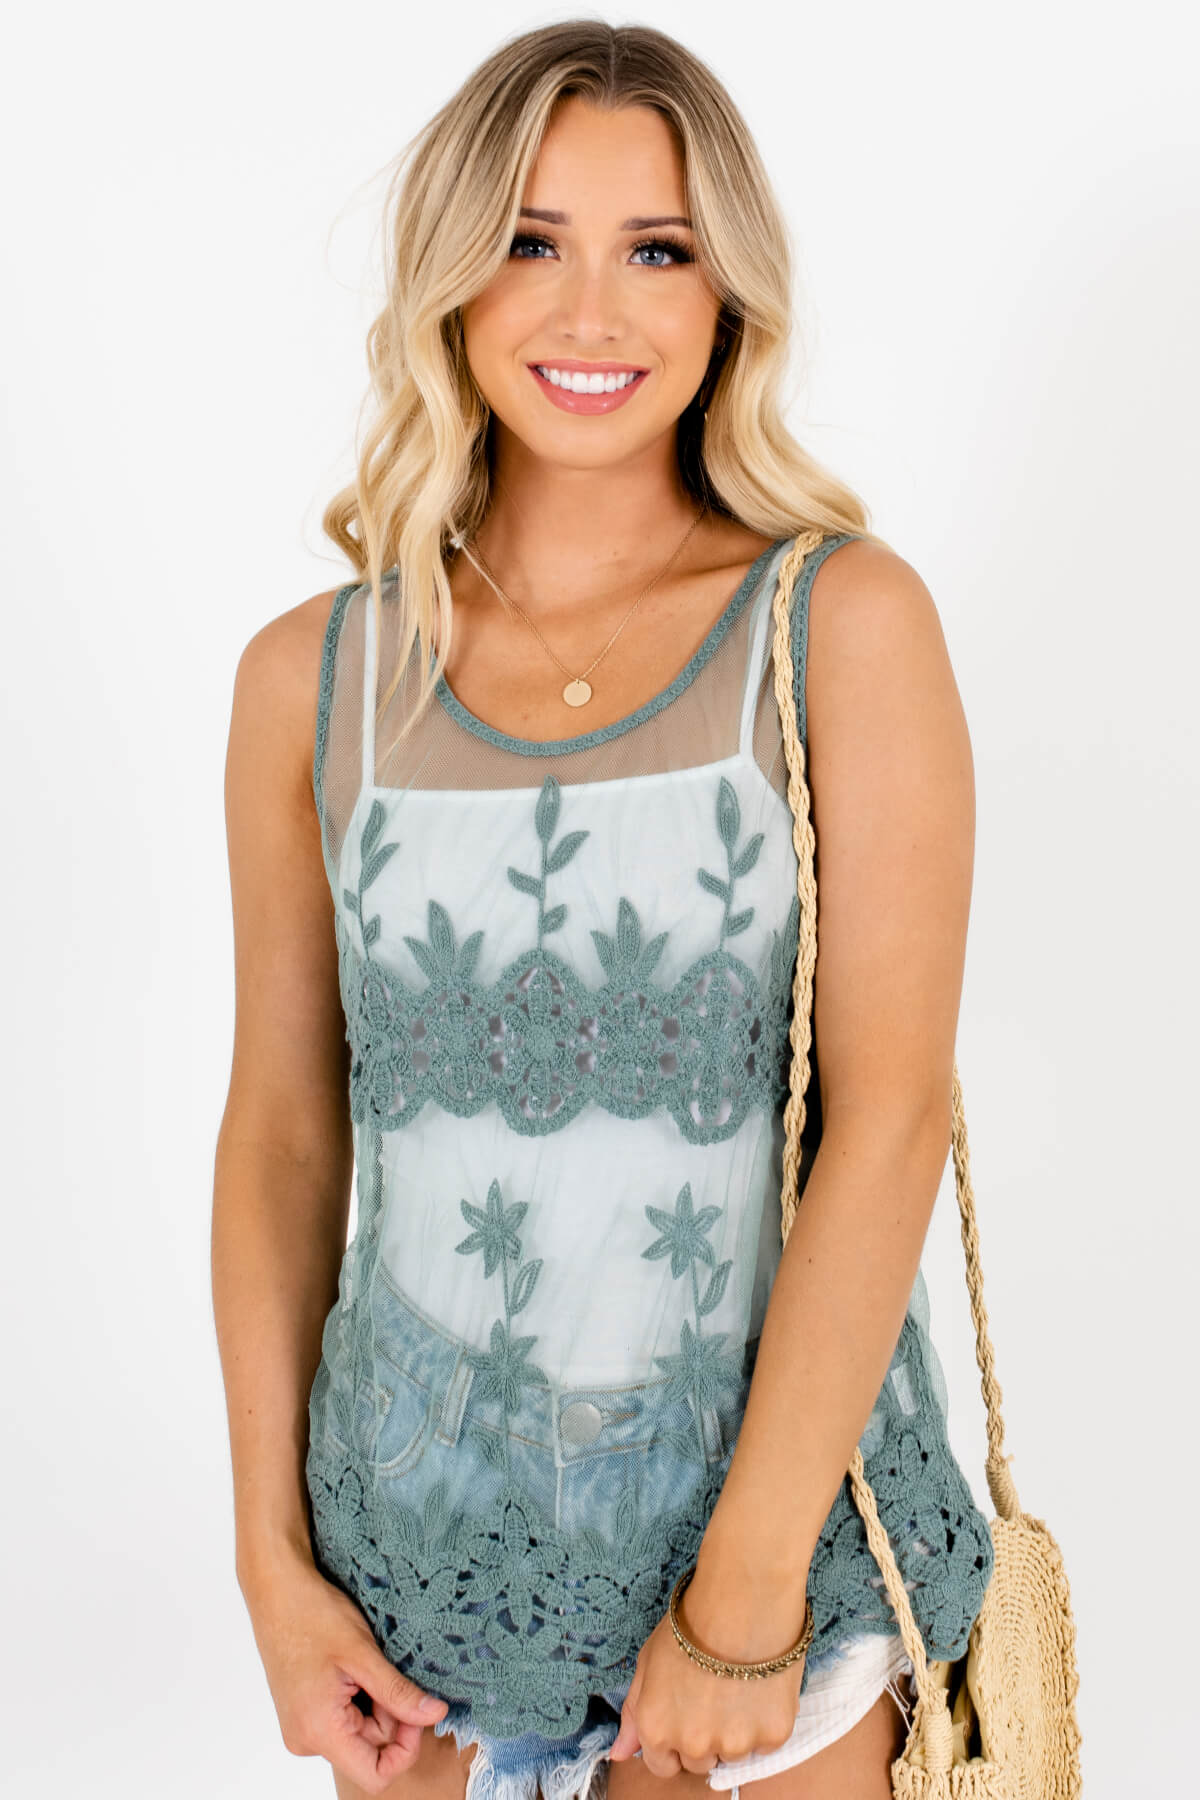 Green Semi-Sheer Lace Material Boutique Tank Tops for Women